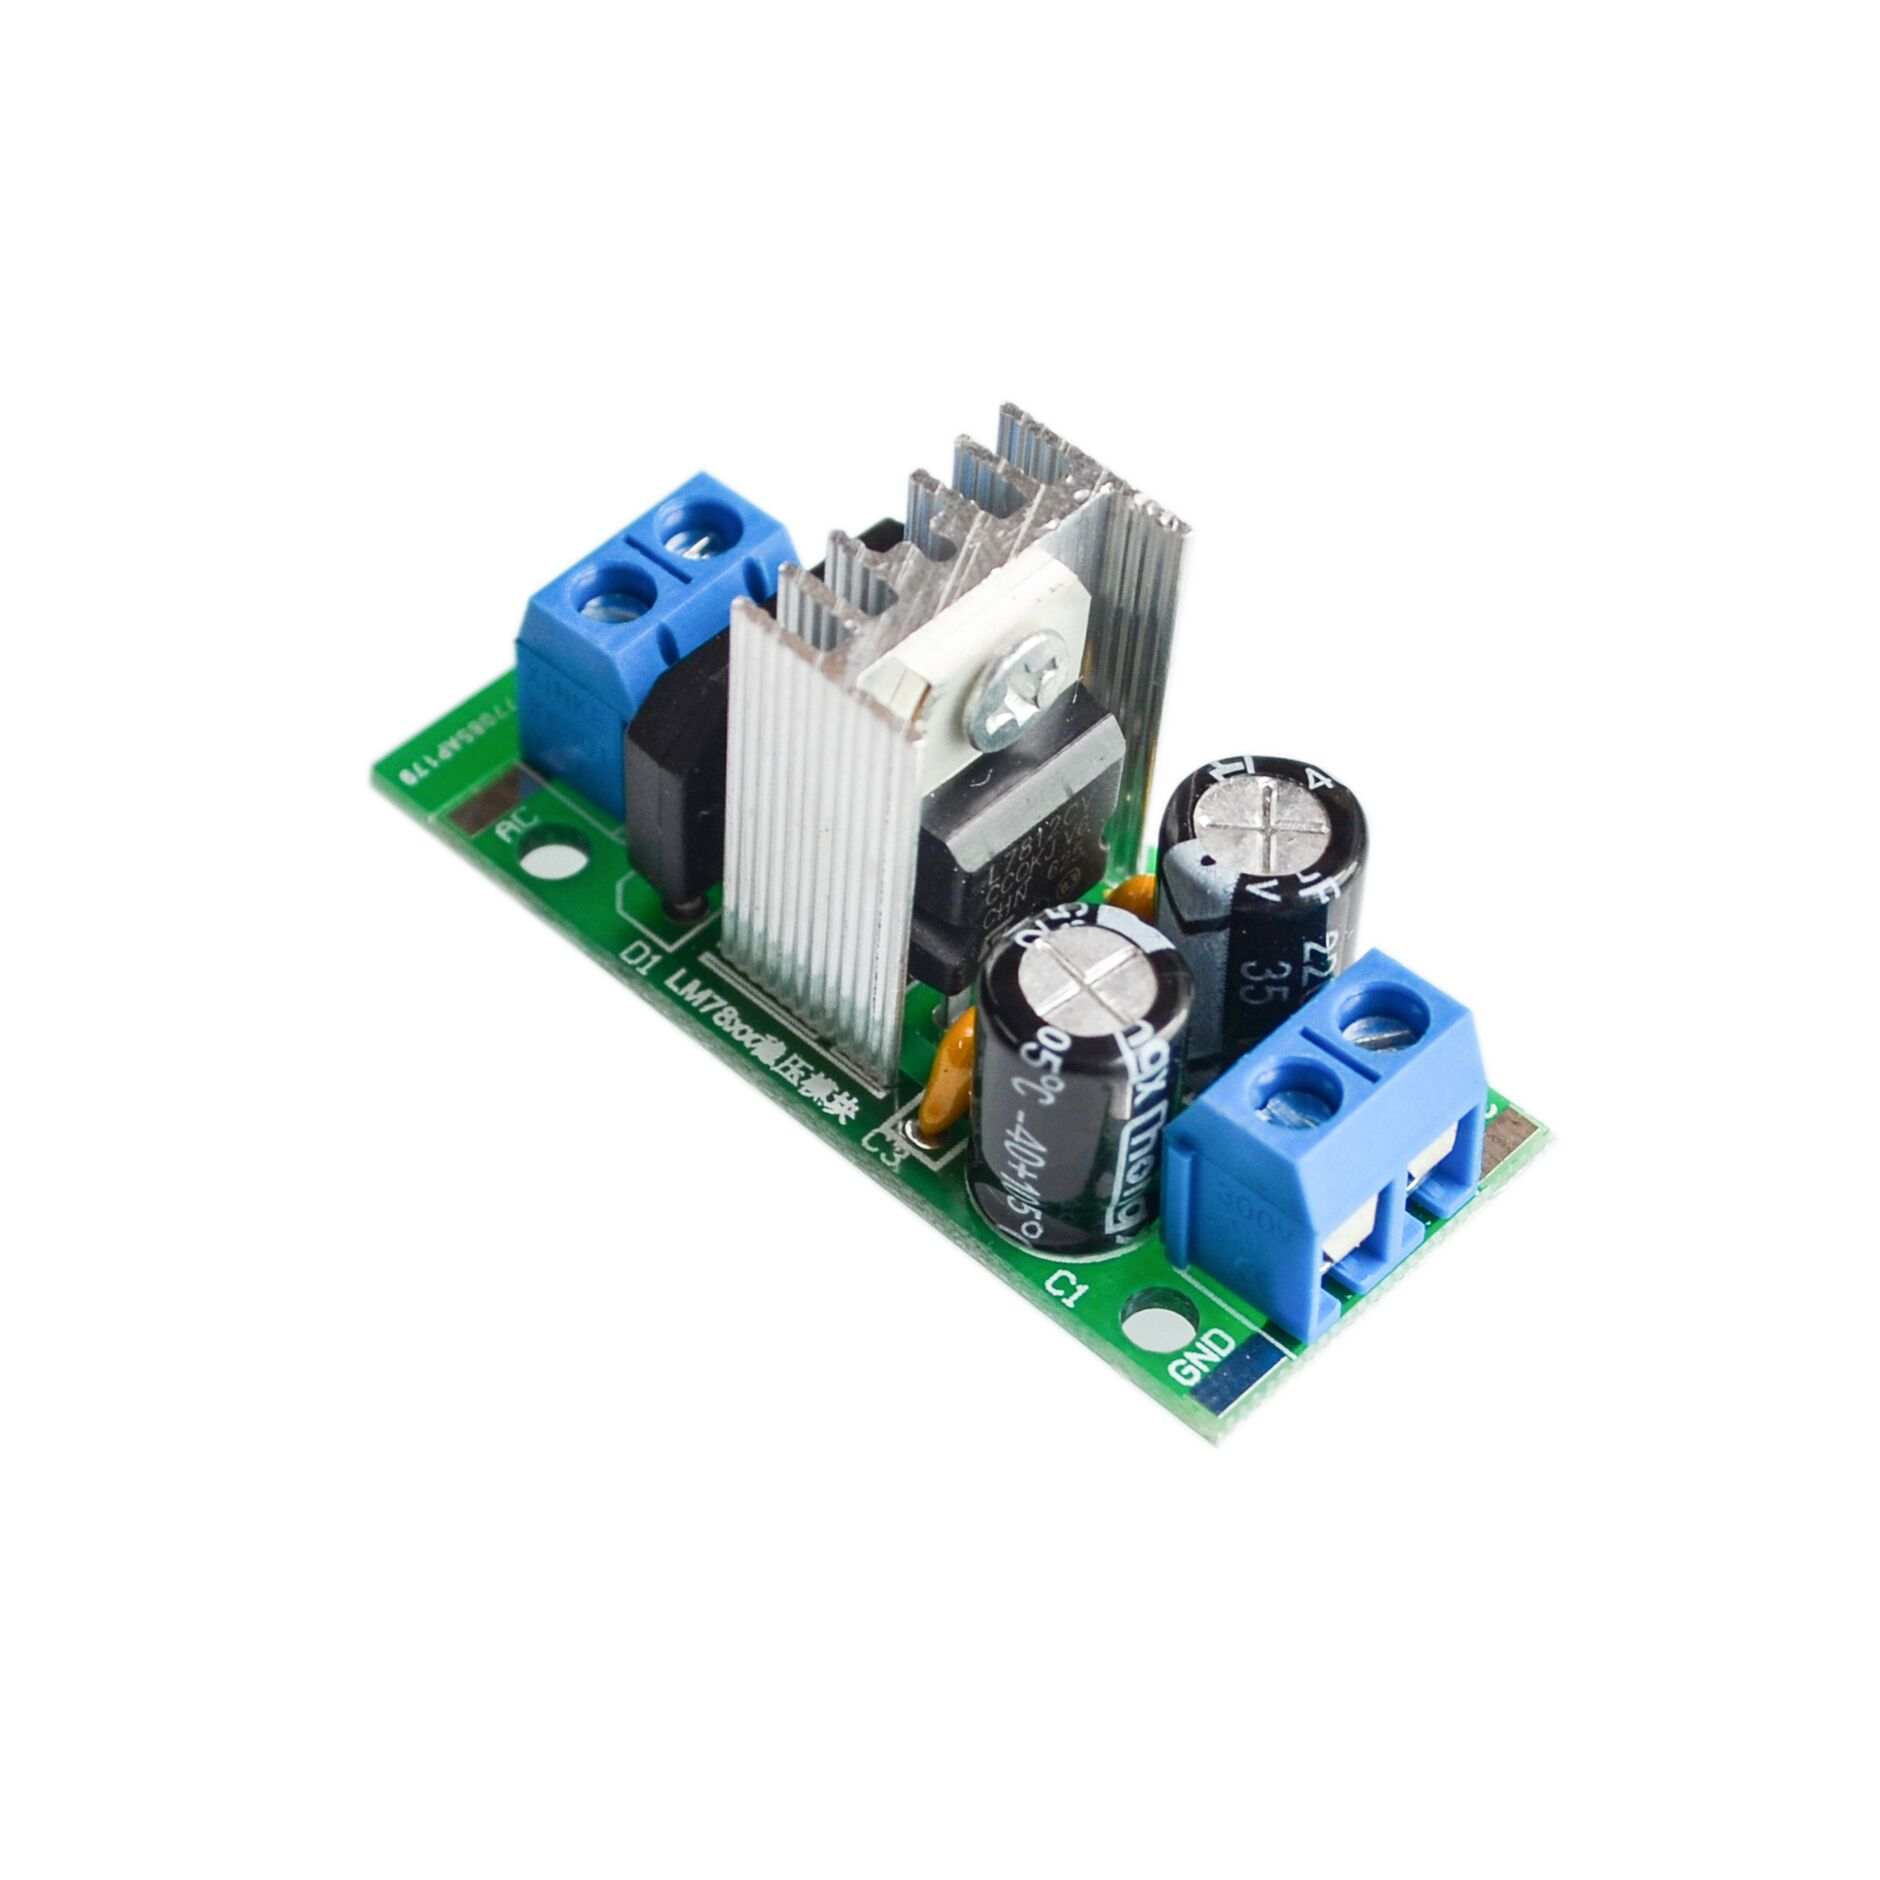 L7812 Lm7812 Three Terminal Regulator Power Module 12v Lm7912 Circuit Step Down Supply Voltage Filter Rectifier Ac Output Dc